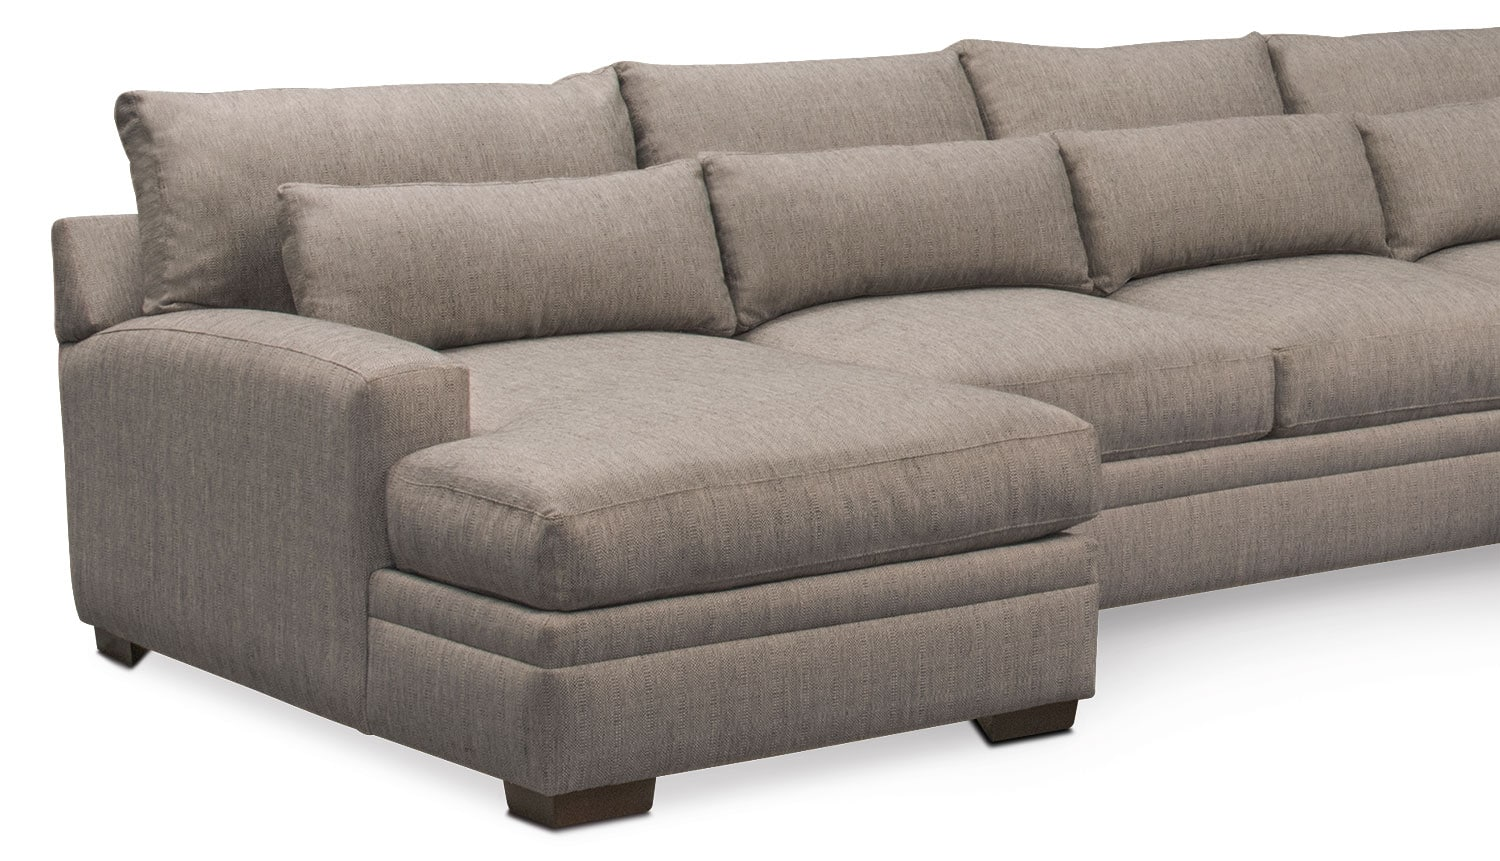 Winston comfort 4 piece sectional with left facing chaise for 4 piece sectional with chaise